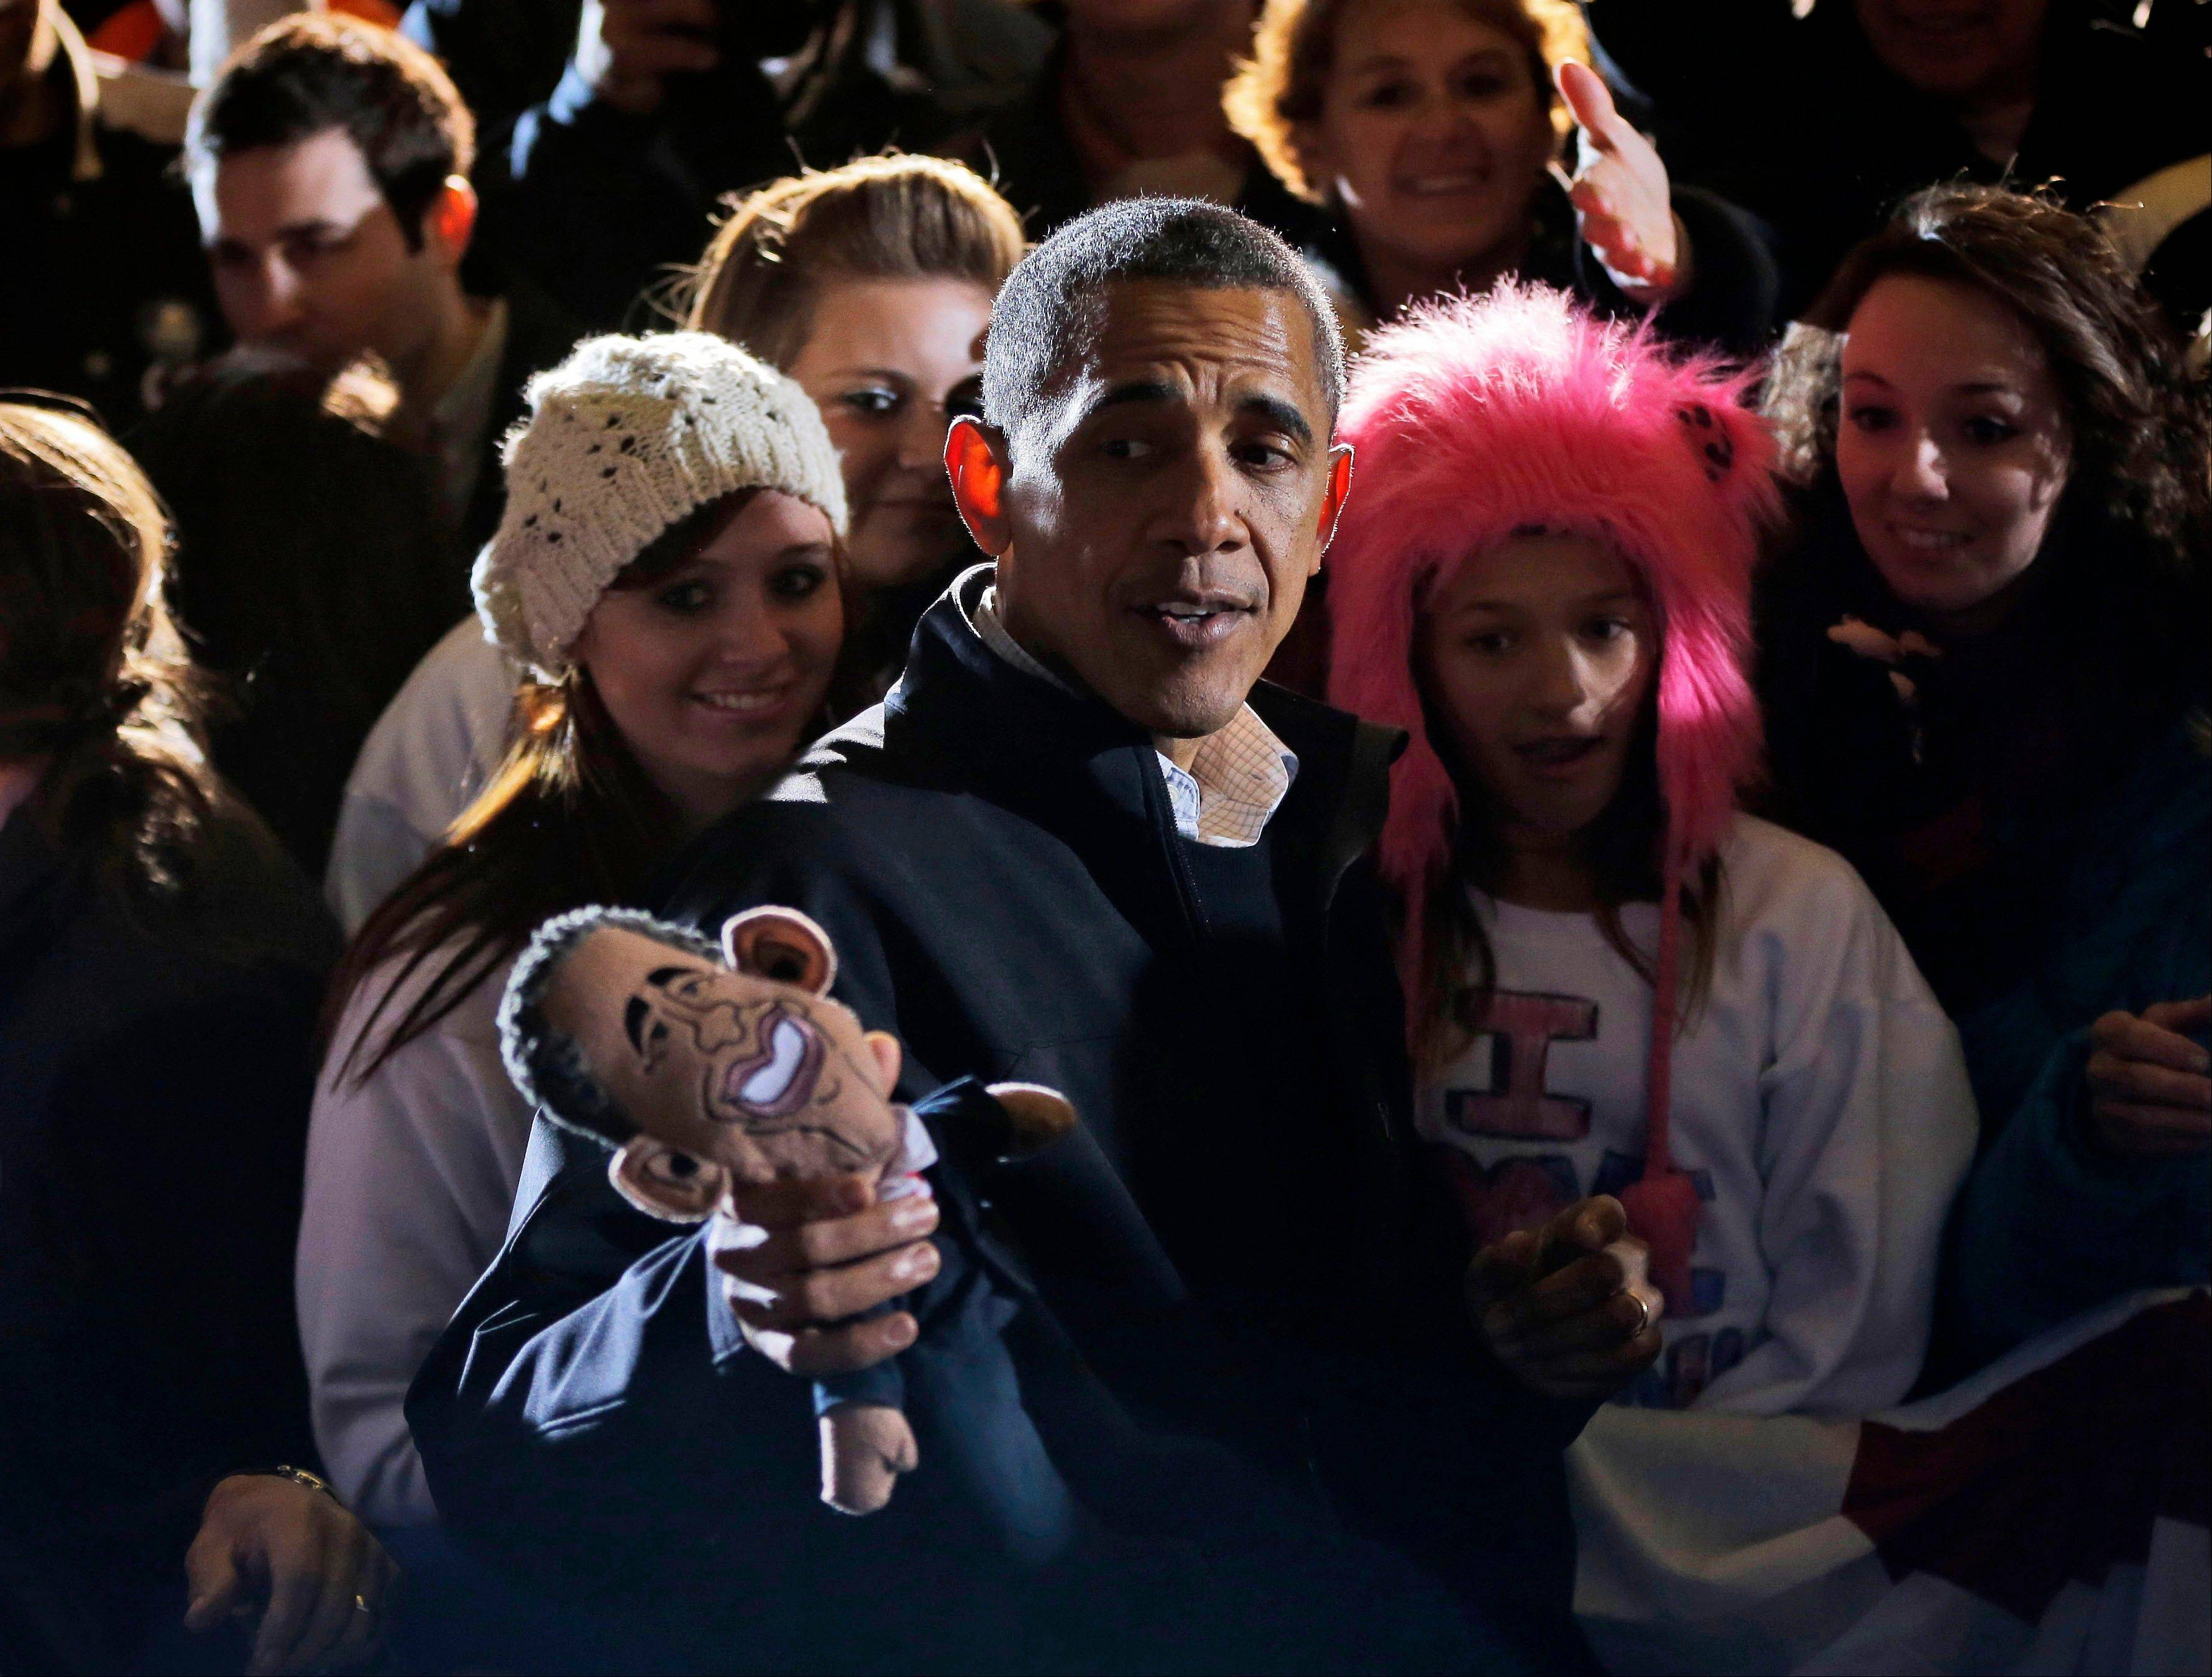 President Barack Obama holds up a doll bearing his resemblance, which was given to him Saturday by a supporter, at a campaign event at Washington Park in Dubuque, Iowa.